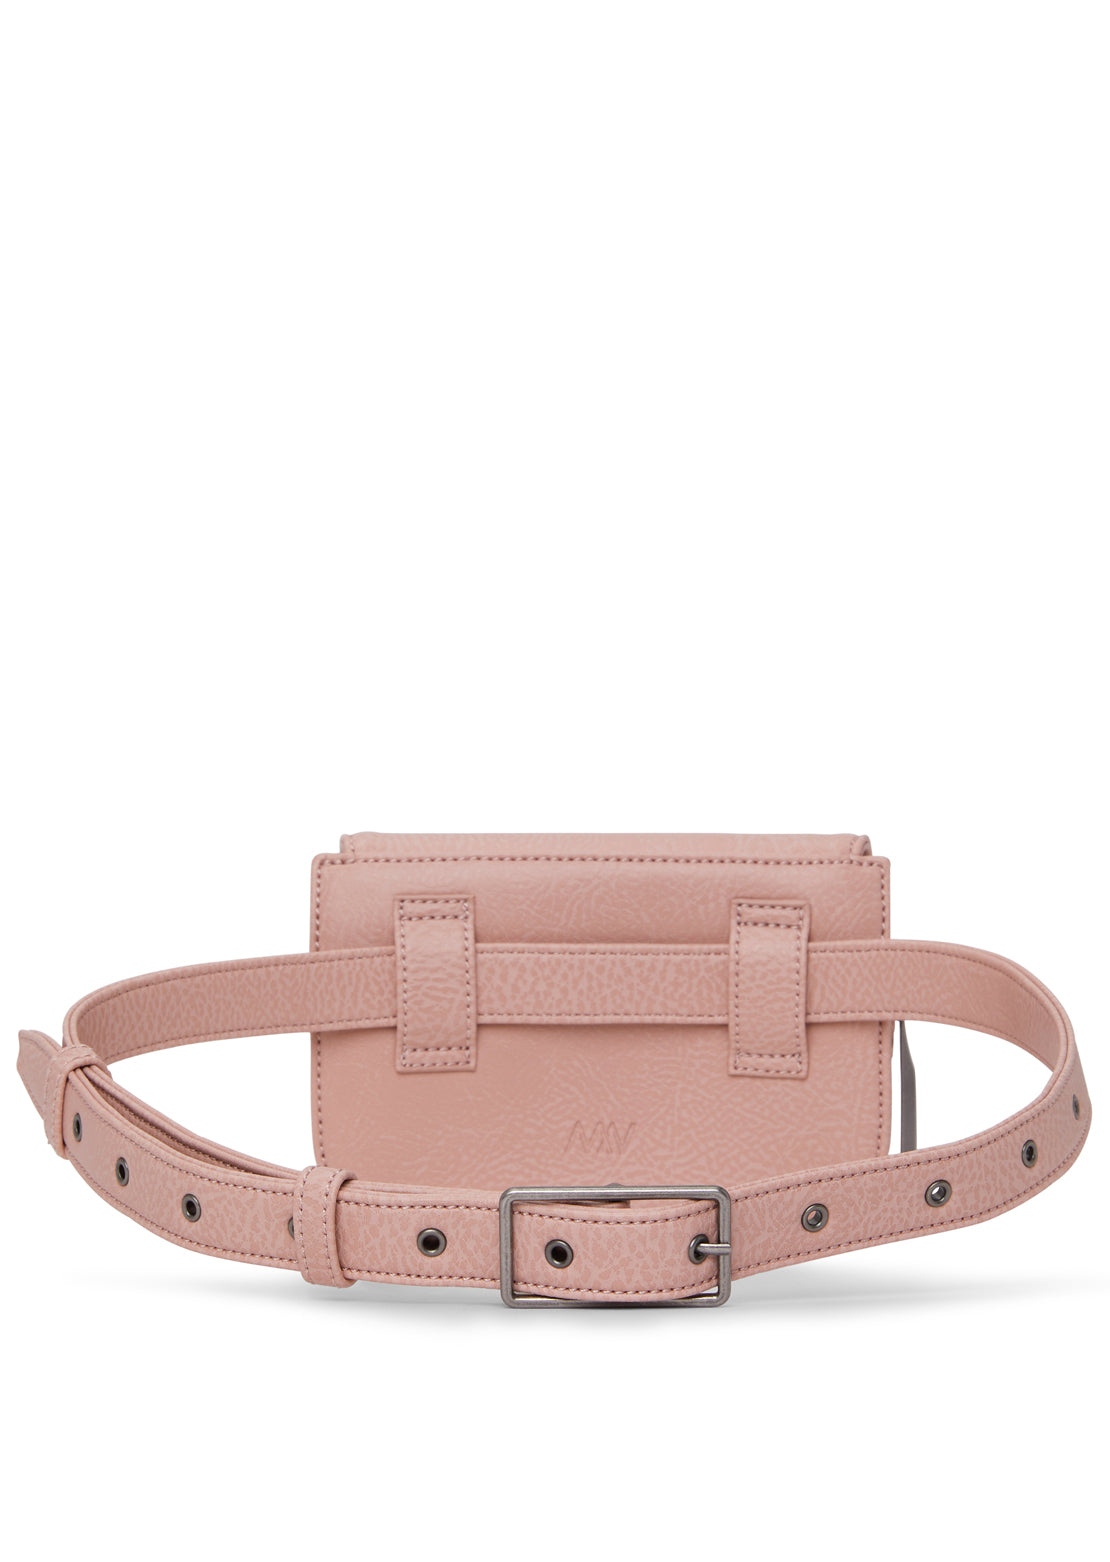 Matt & Nat Park Dwell Collection Fanny Pack Pebble